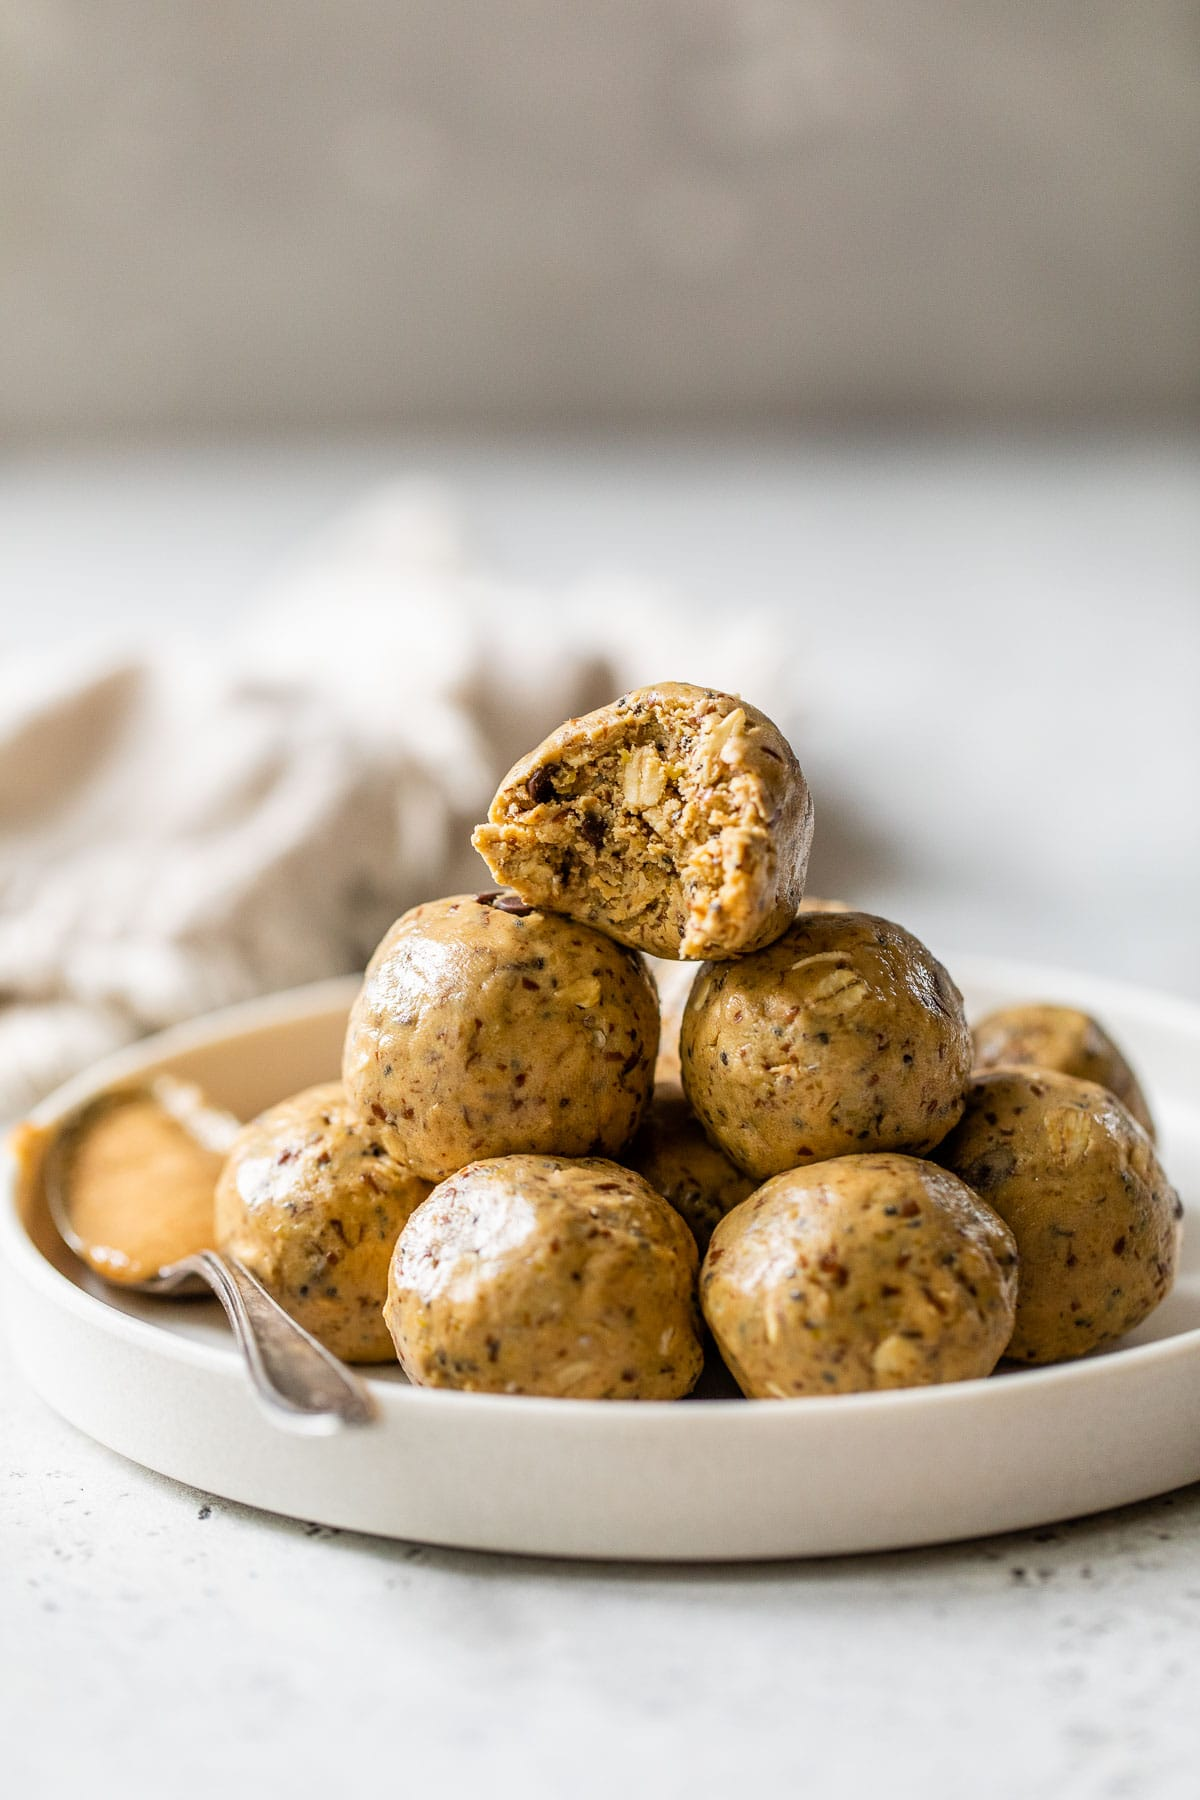 low calories peanut butter protein balls stacked on a plate